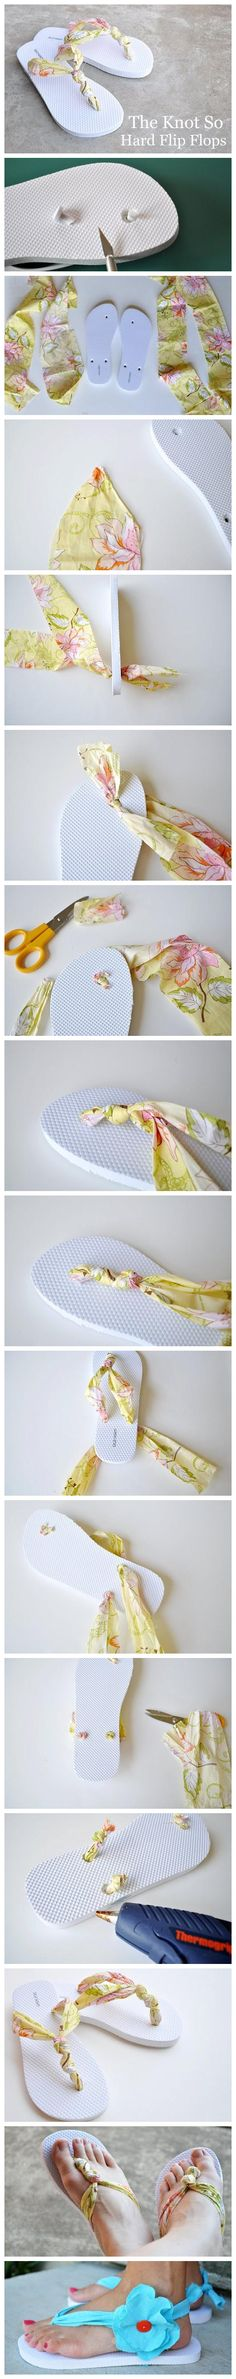 DIY make your own knot flip flops!!